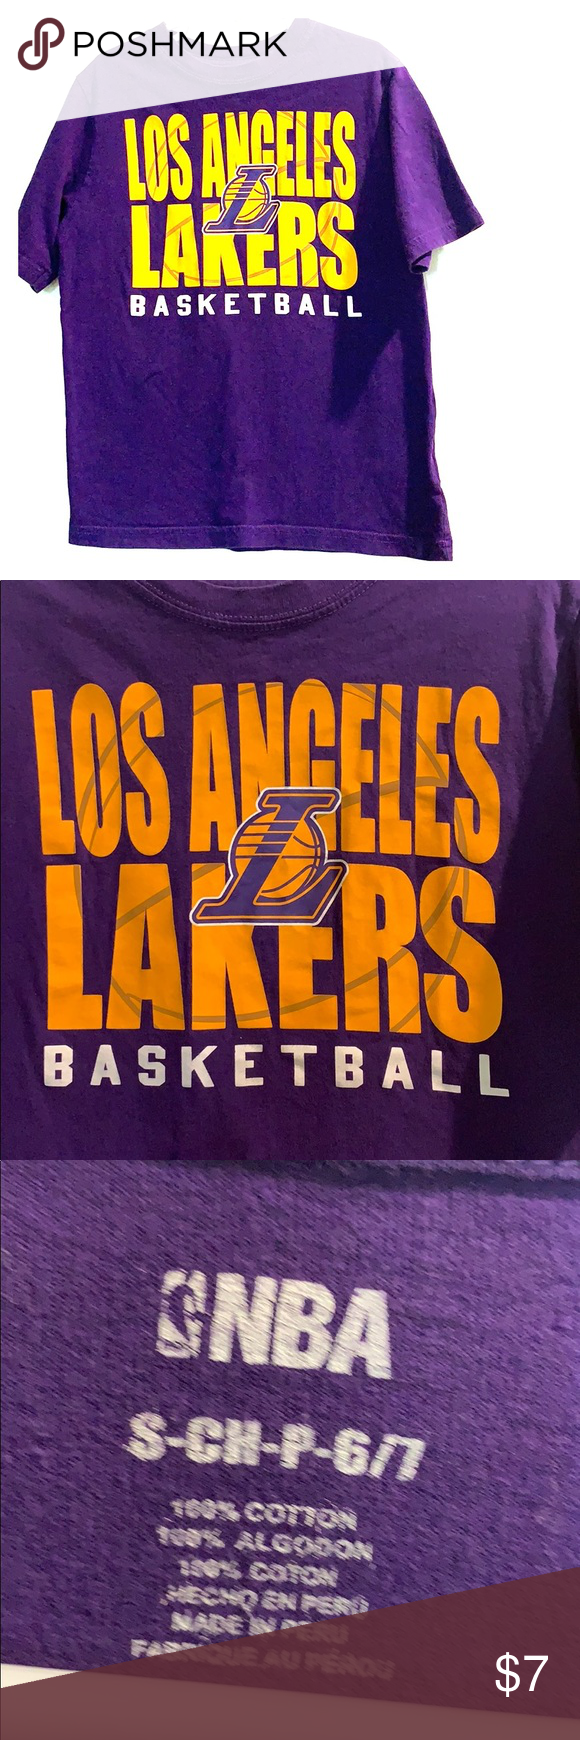 Boys Los Angeles Lakers Basketball T Shirt Lakers T Shirt Los Angeles Lakers Basketball Los Angeles Lakers